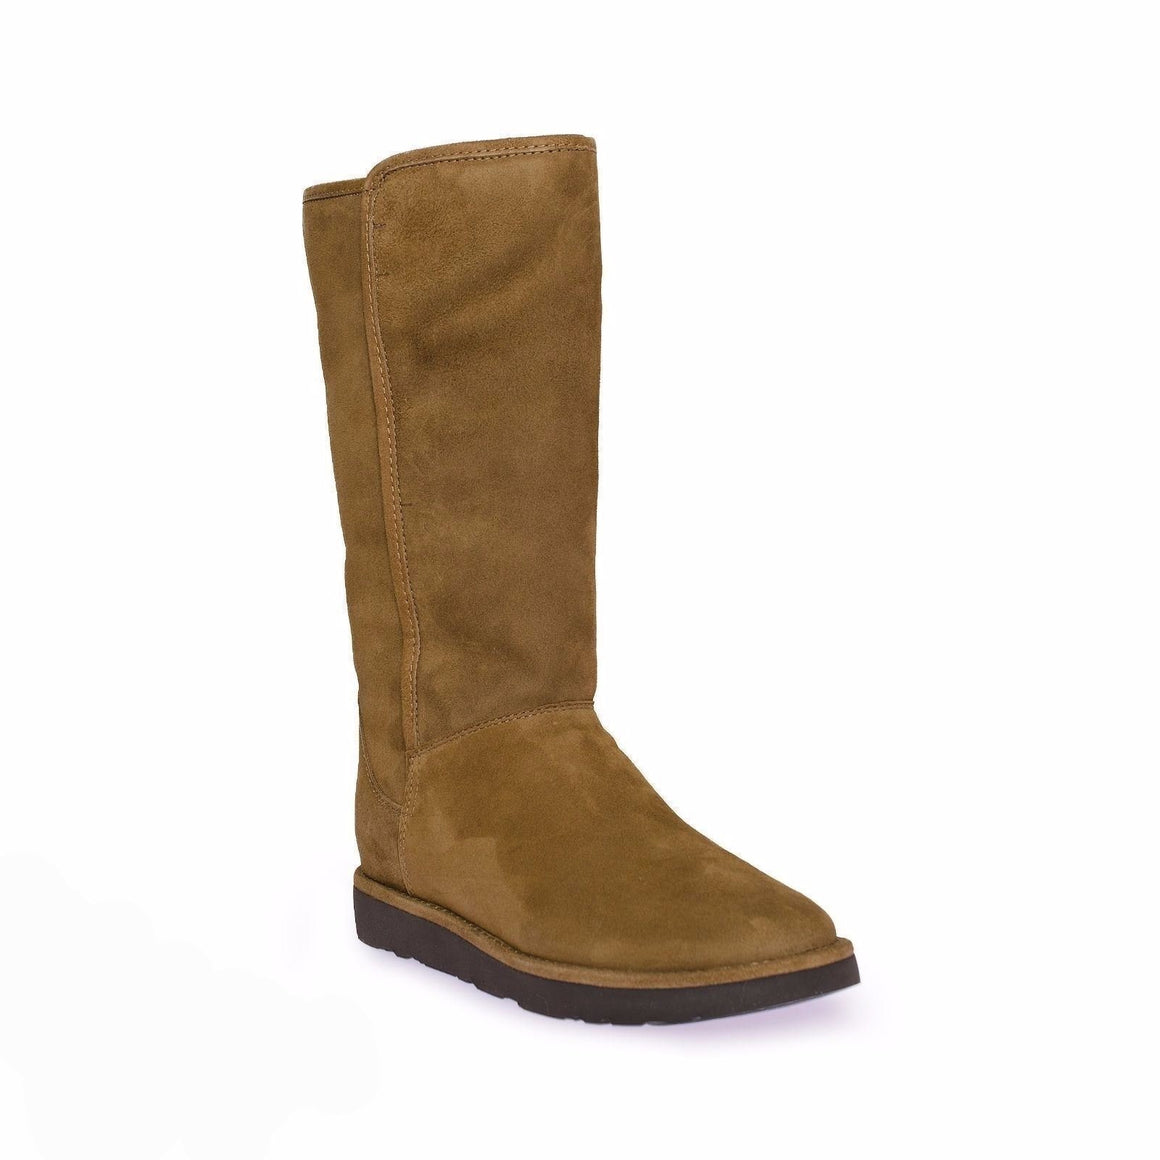 UGG Abree II Tall Bruno Boots - Women's